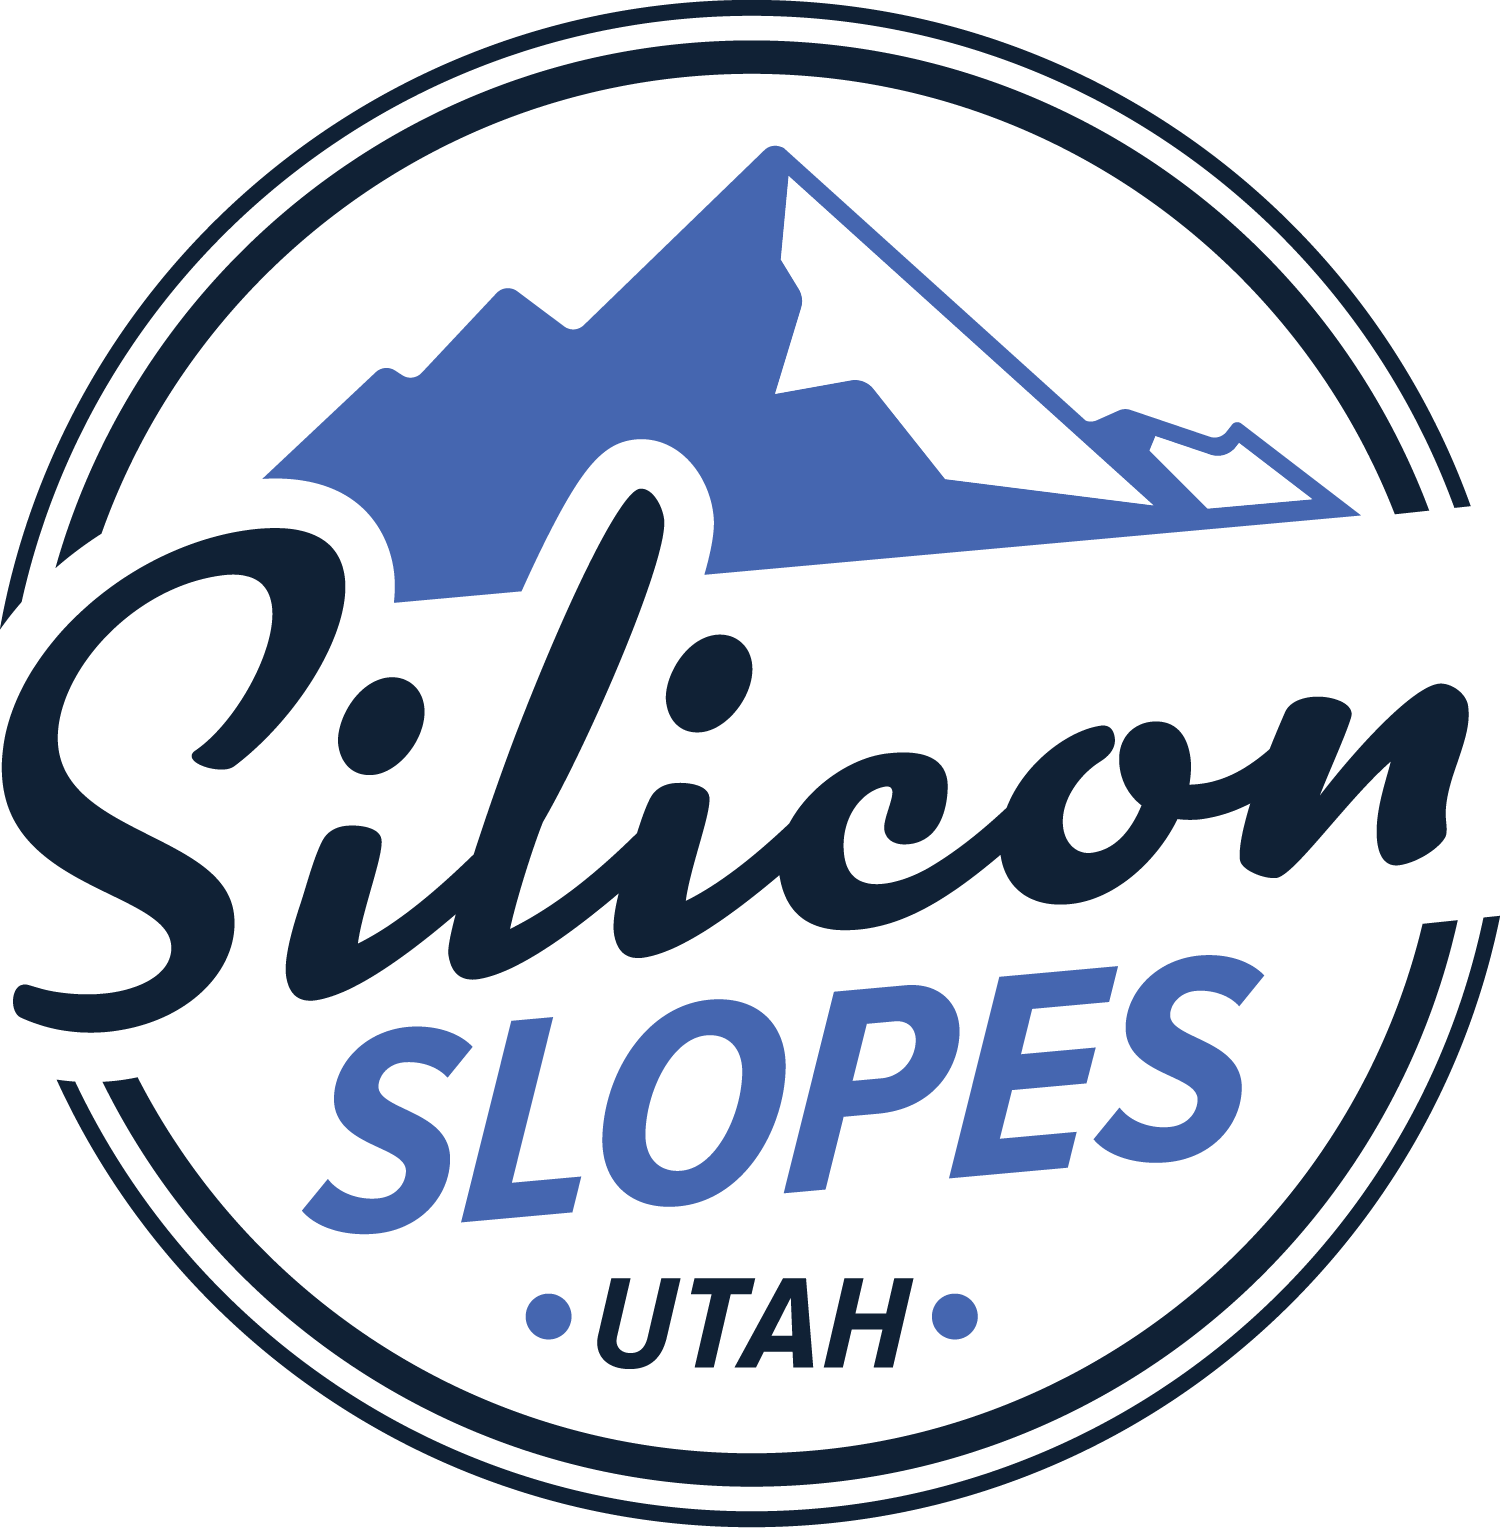 Silicon Slopes